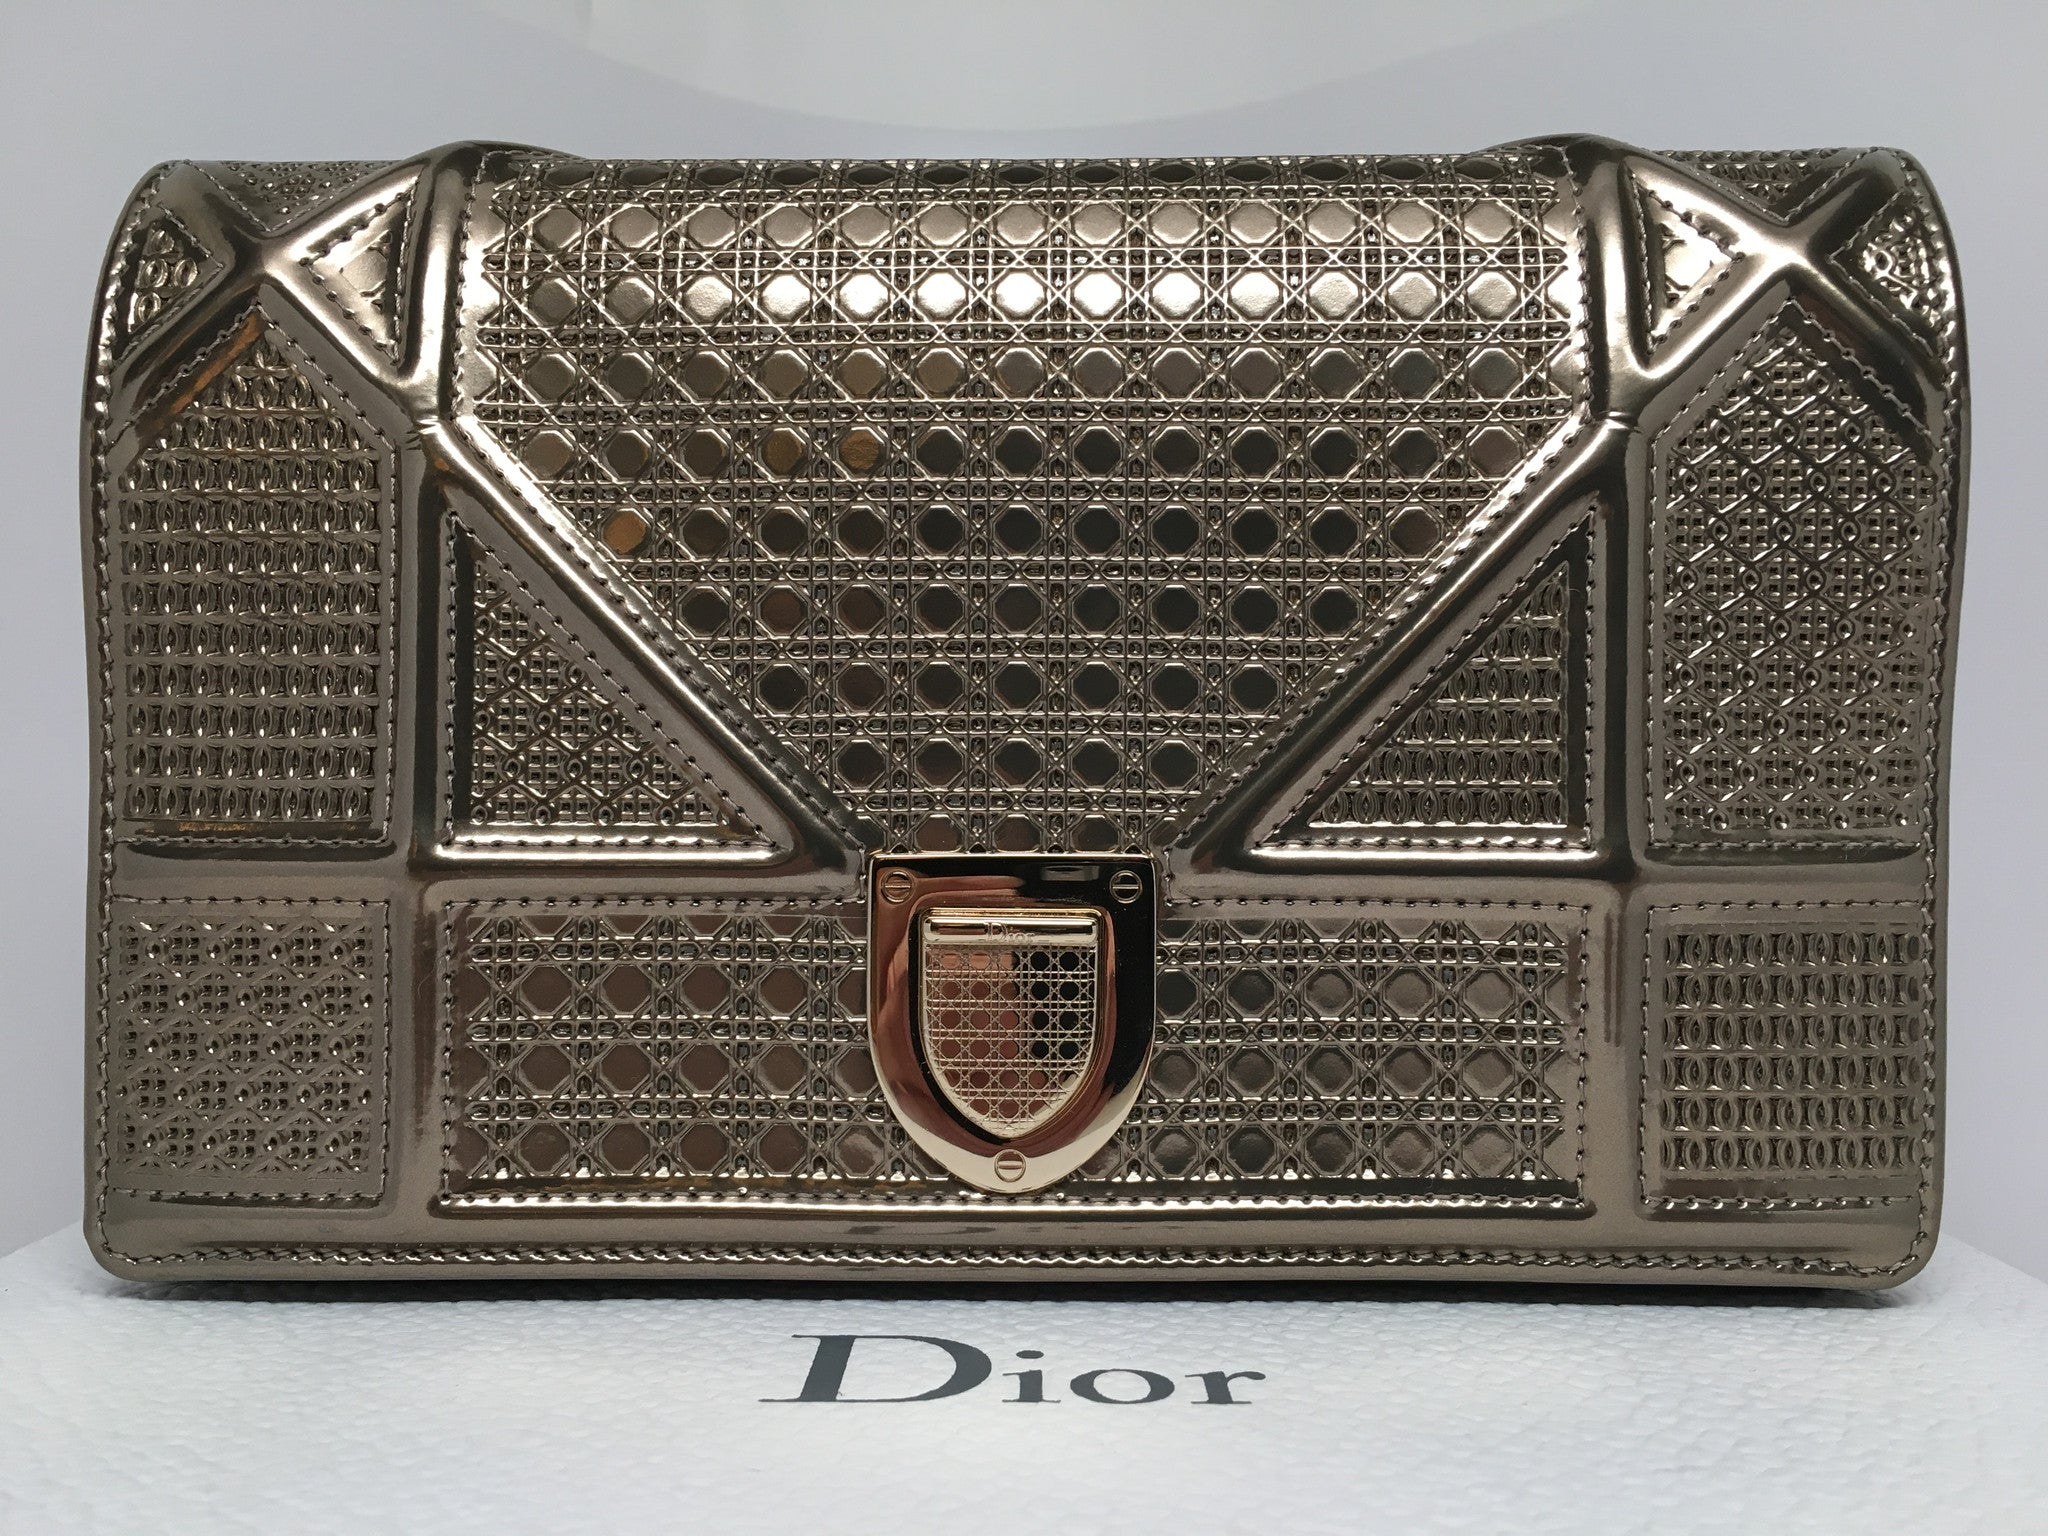 6371dd2915 CHRISTIAN DIOR DIORAMA BAG IN CHAMPAGNE METALLIC CALFSKIN WITH MICRO-C –  Hebster Boutique